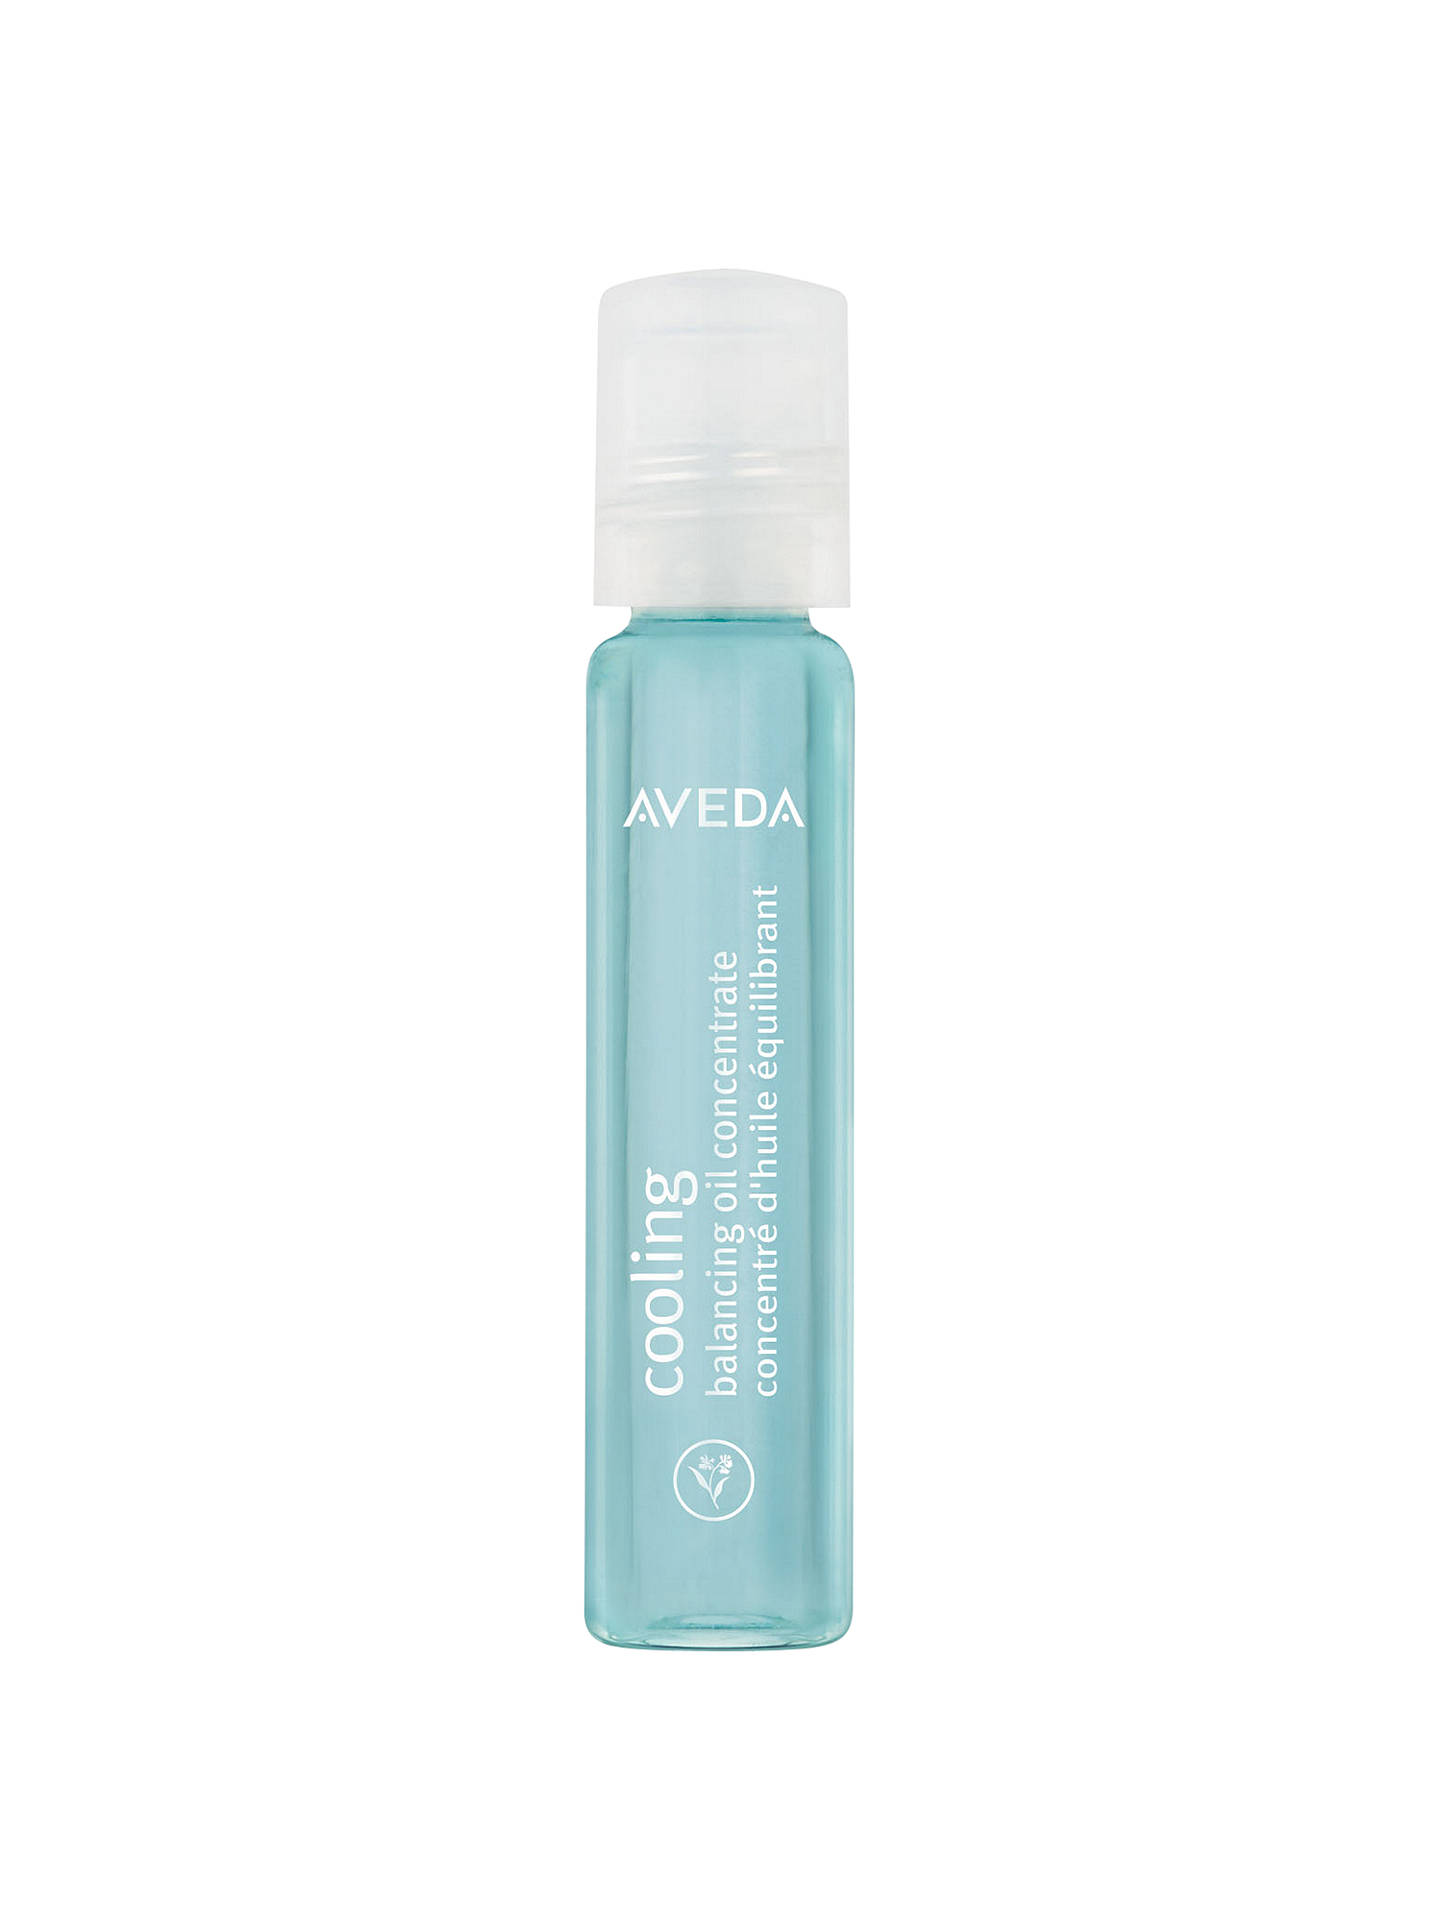 Buy Aveda Cooling Muscle Relief Oil Rollerball, 7ml Online at johnlewis.com